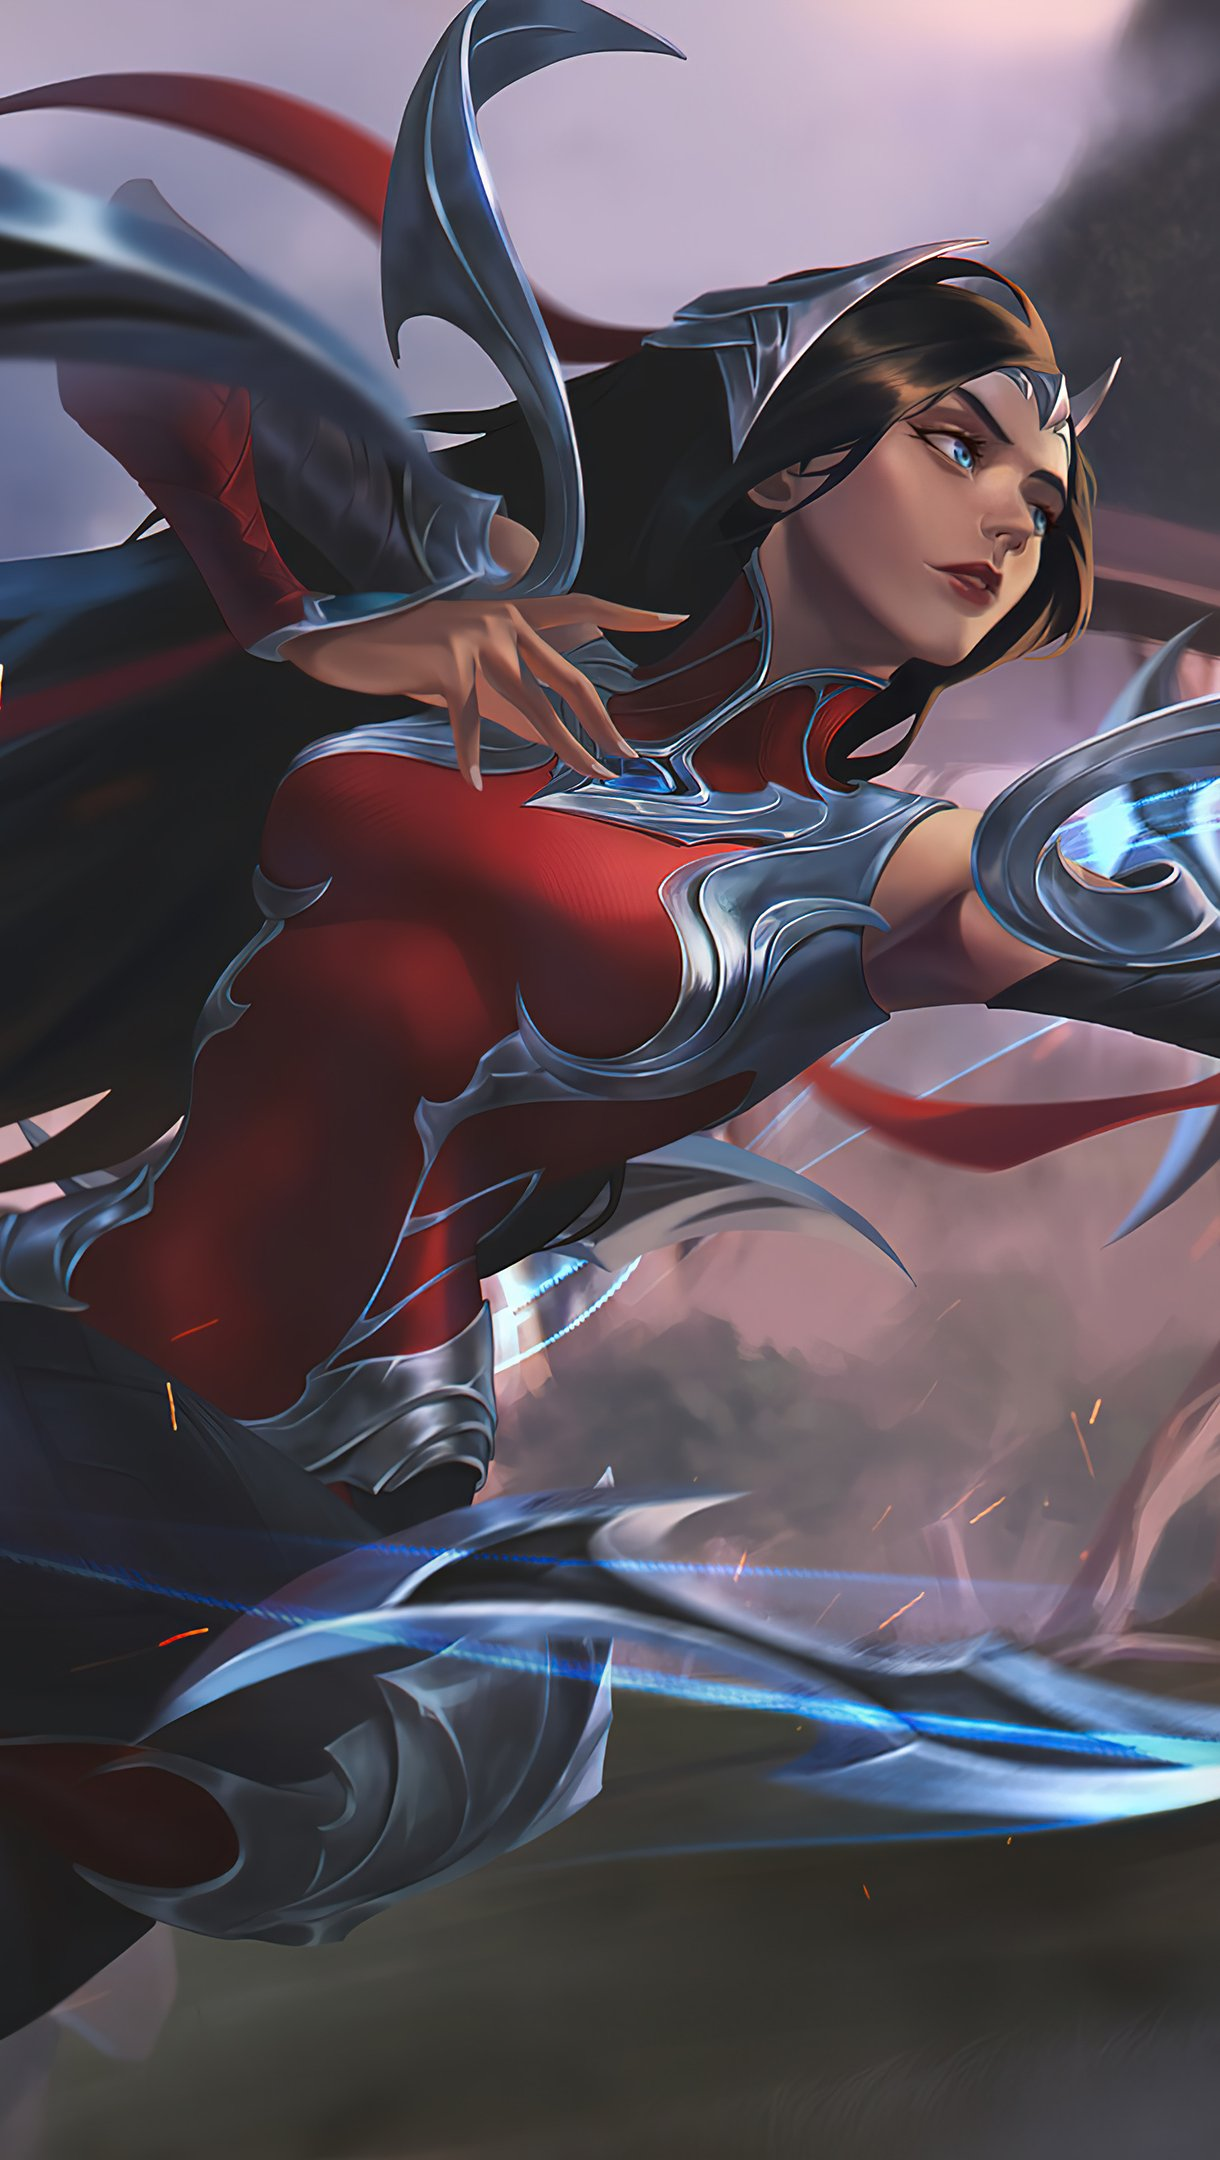 Fondos de pantalla Irelia League of Legends Vertical